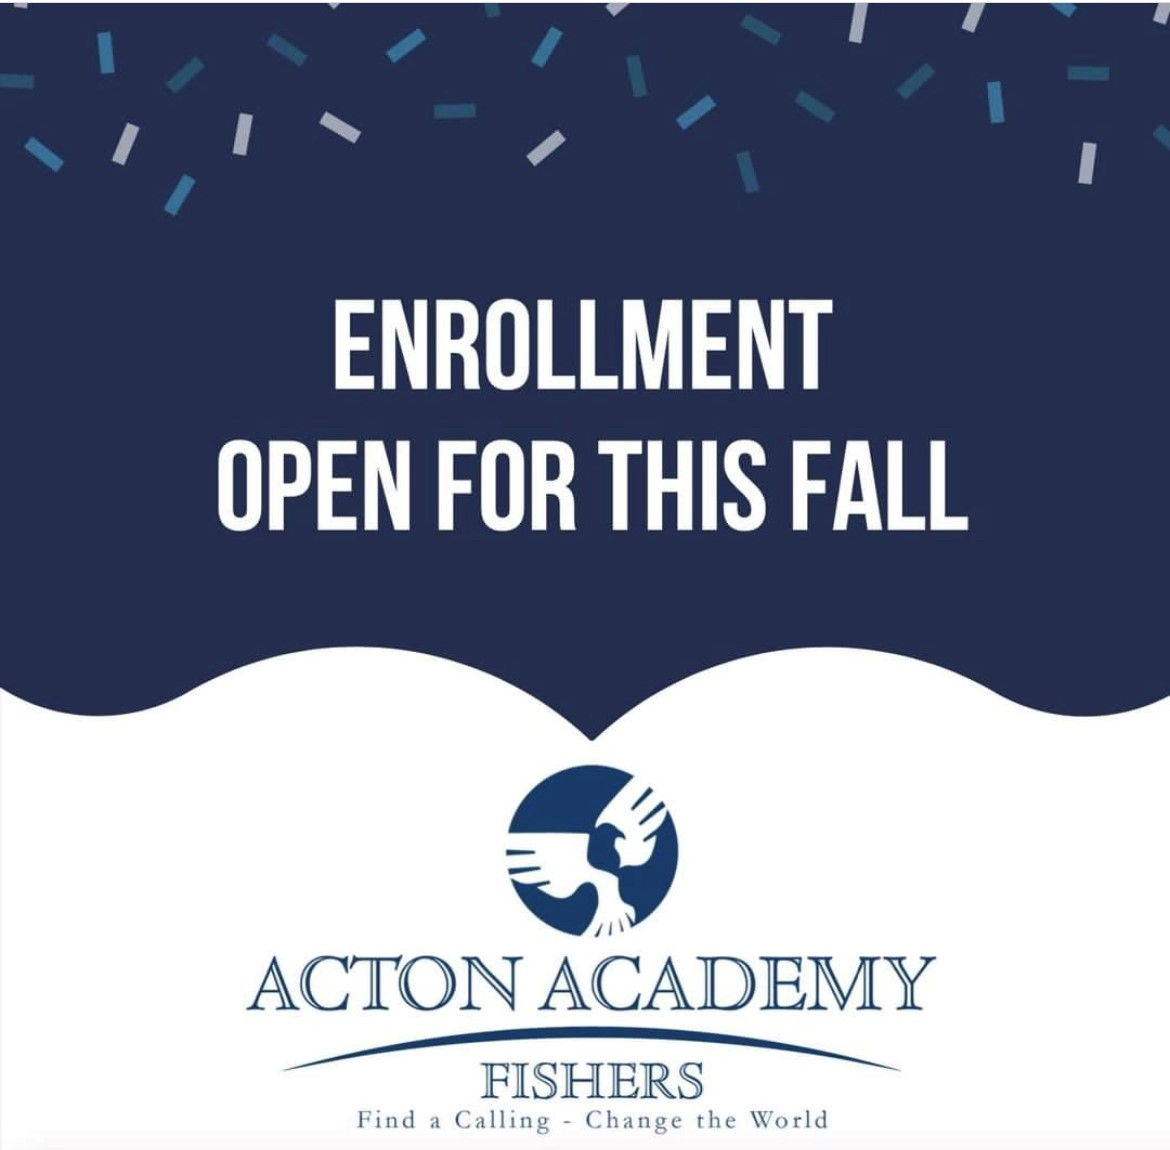 enrollment open for this fall. acton academy fishers. find a calling - change the world.